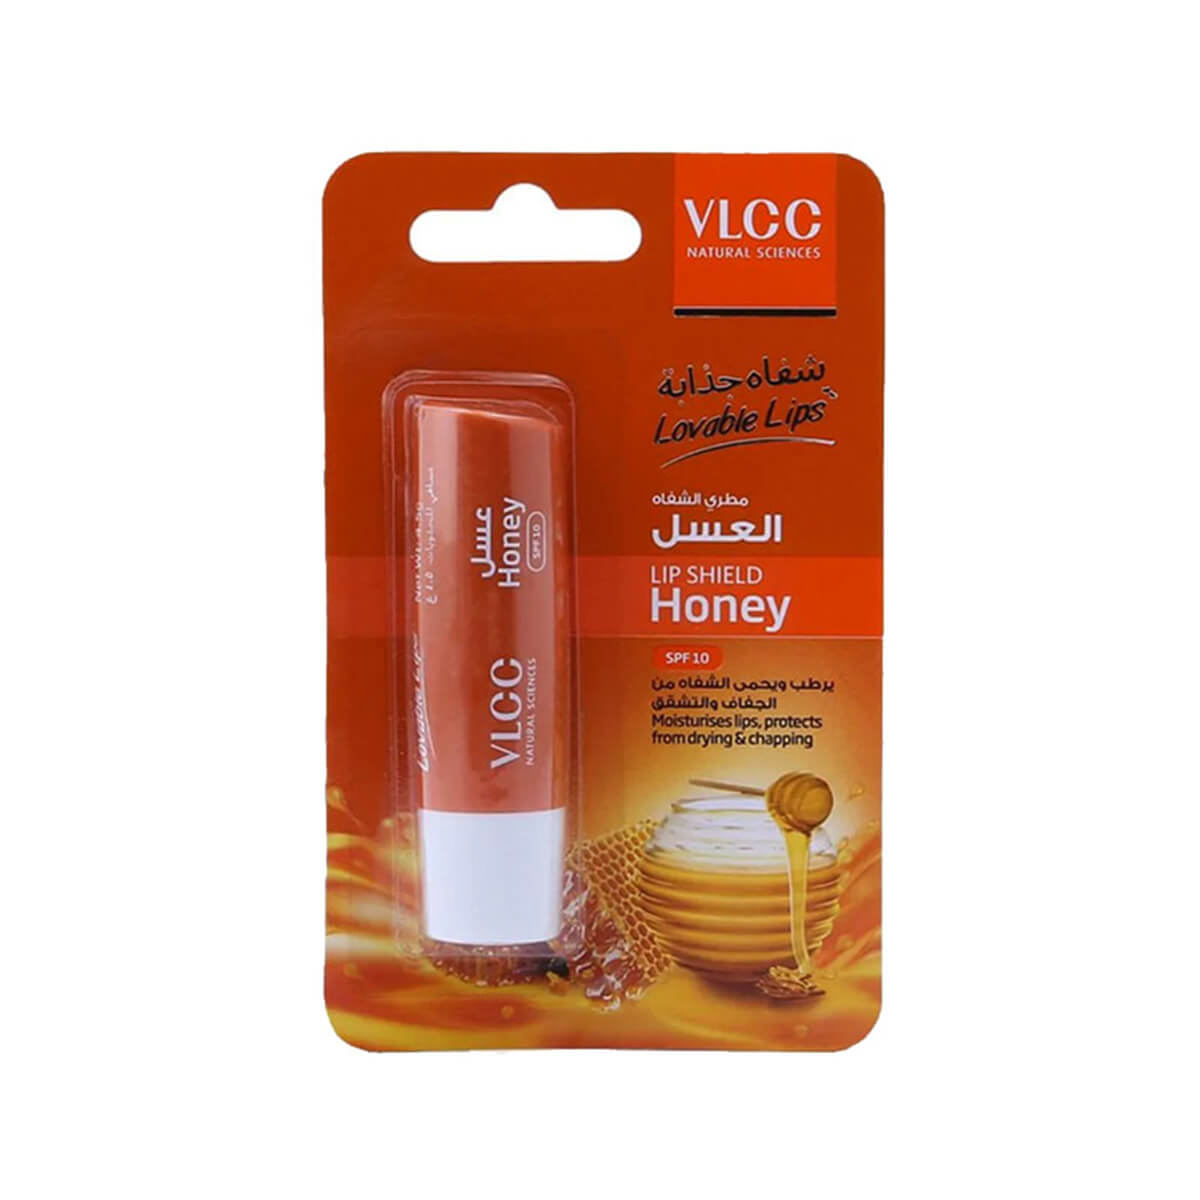 VLCC Lip Shield Balm Honey SPF 10